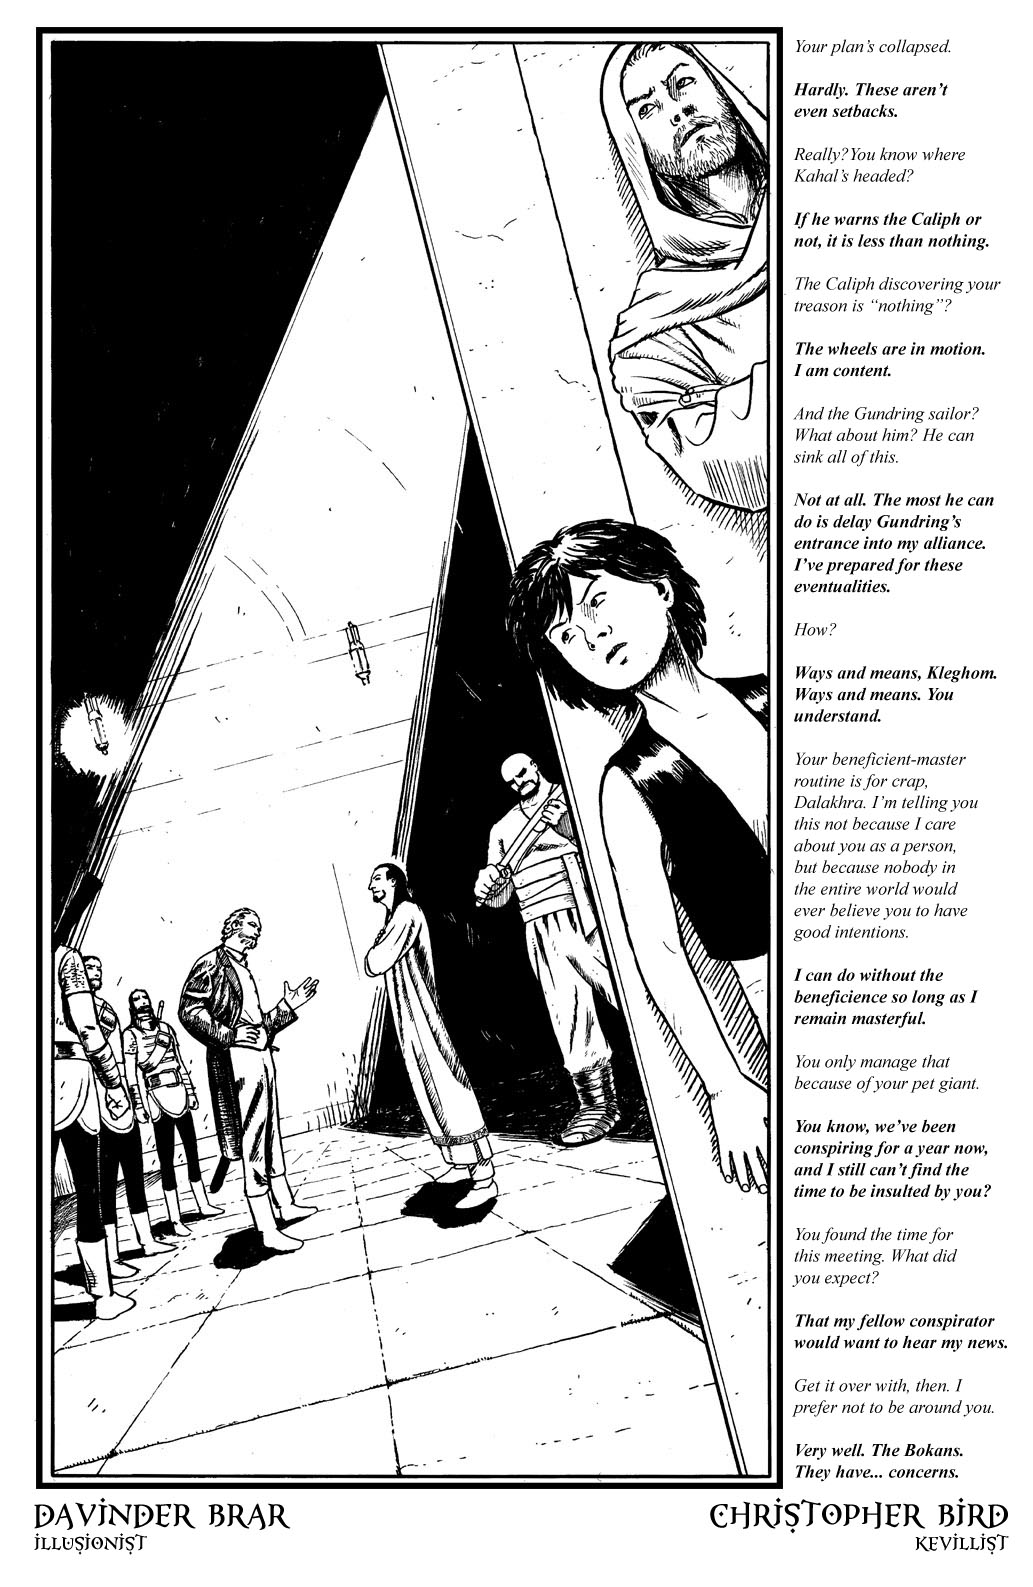 Book 3, page 20